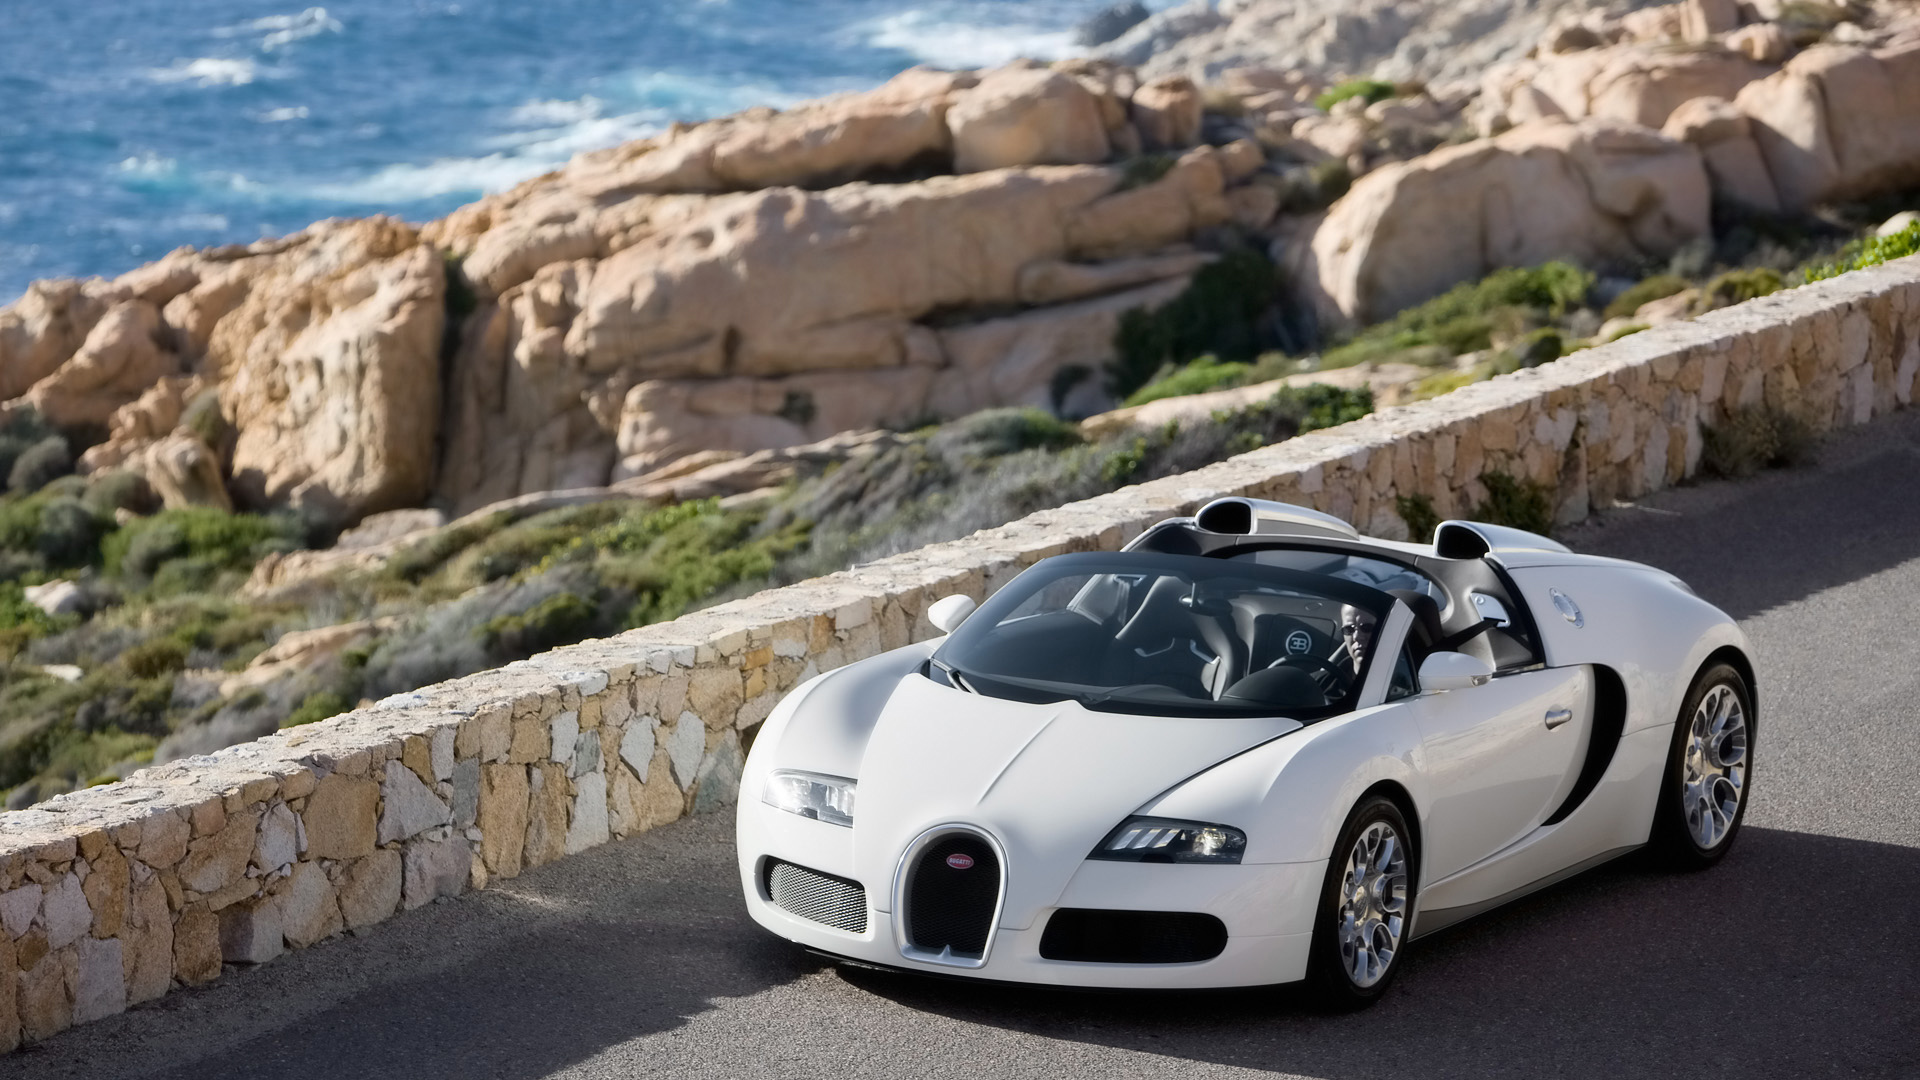 Bugatti Veyron - Out for a Drive Wallpapers